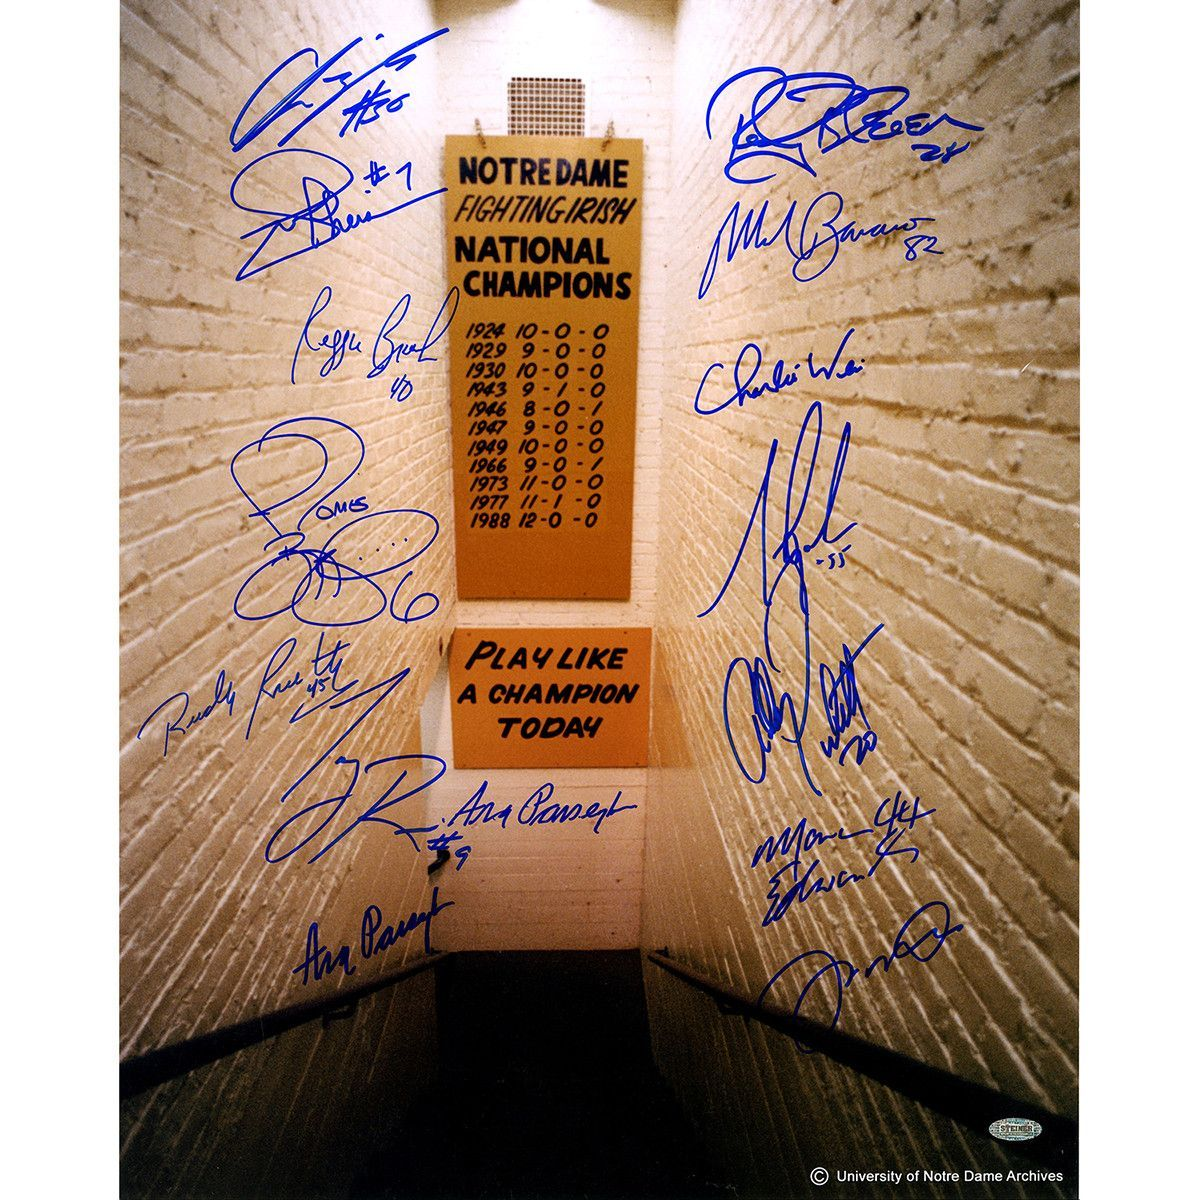 Notre Dame Greats 15 Signature Notre Dame Locker Room Tunnel w/ Play Like a Champion Sign Vertical 16x20 Photo